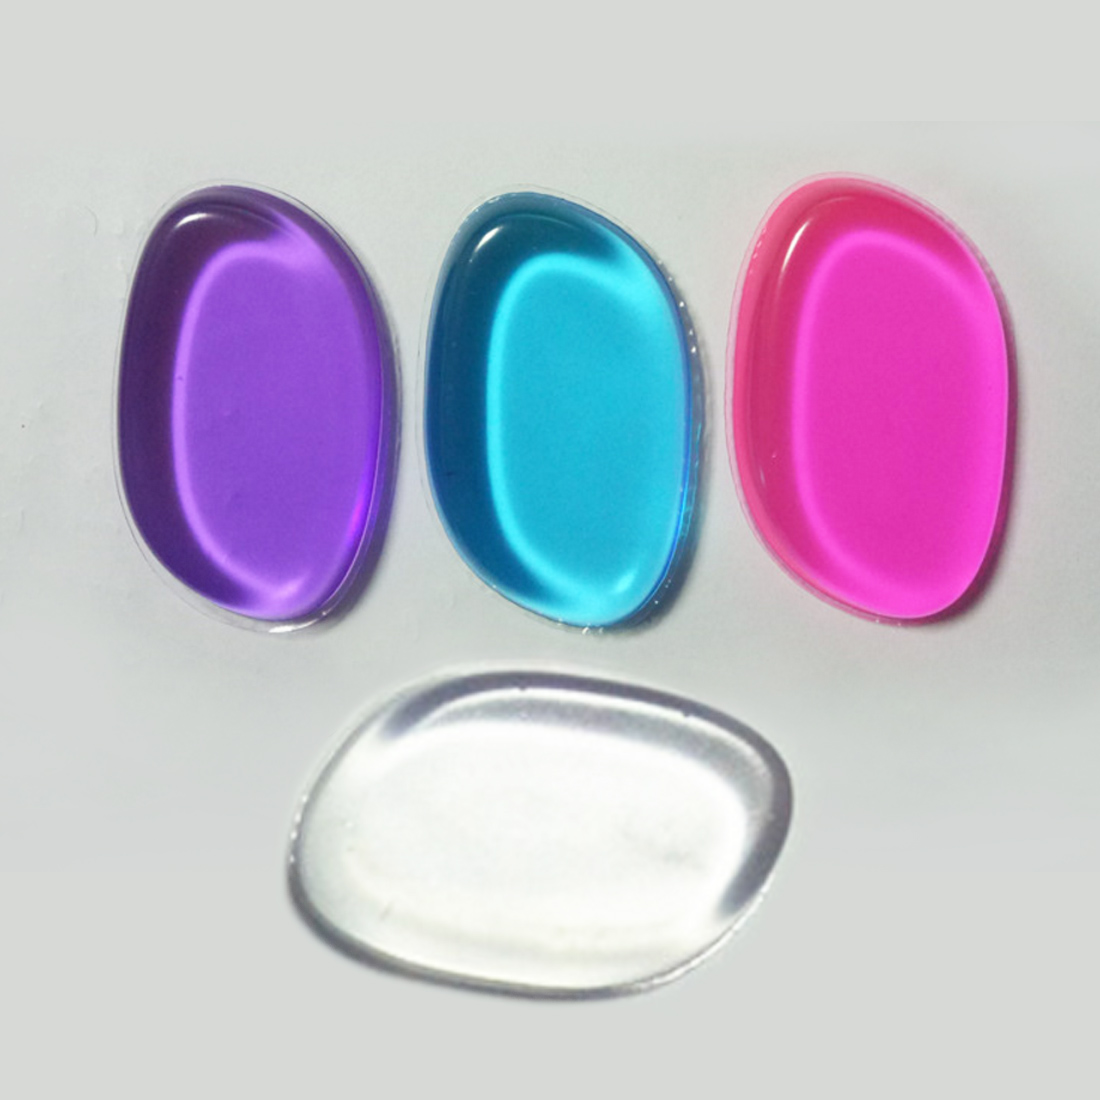 Beauty Essentials 2pcs Silicone Sponge Makeup Puff For Liquid Foundation Bb Cream Beauty Essentials Best Seller#30 Cosmetic Puff